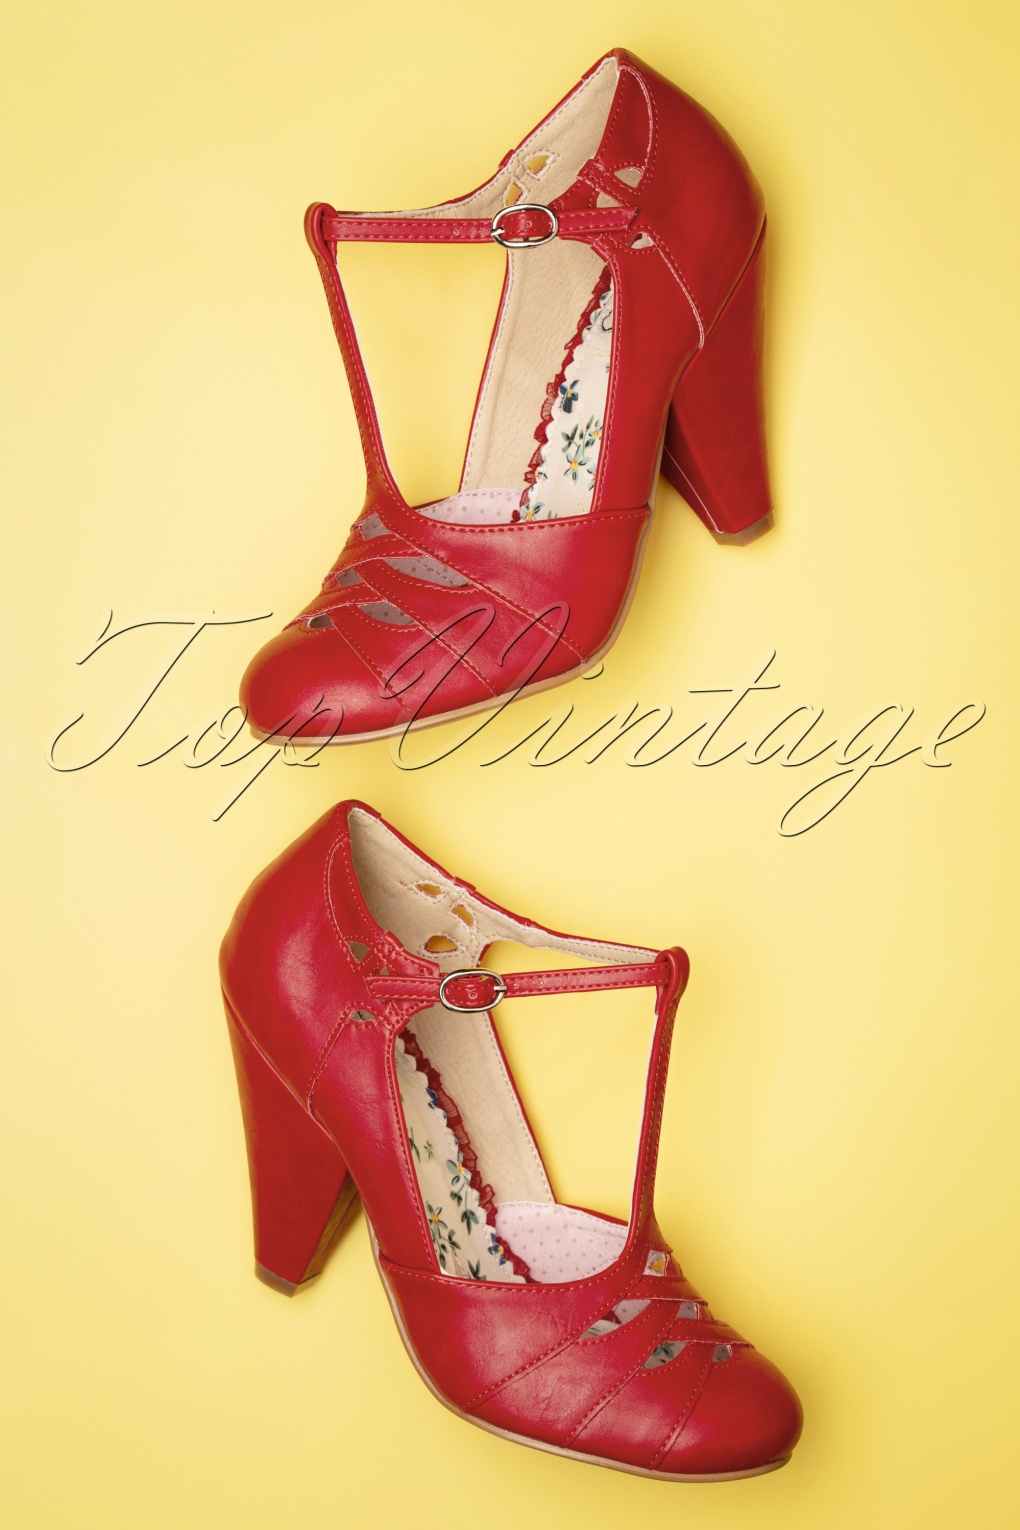 1950s Style Shoes | Heels, Flats, Saddle Shoes 50s Laura T-Strap Pumps in Red £81.34 AT vintagedancer.com